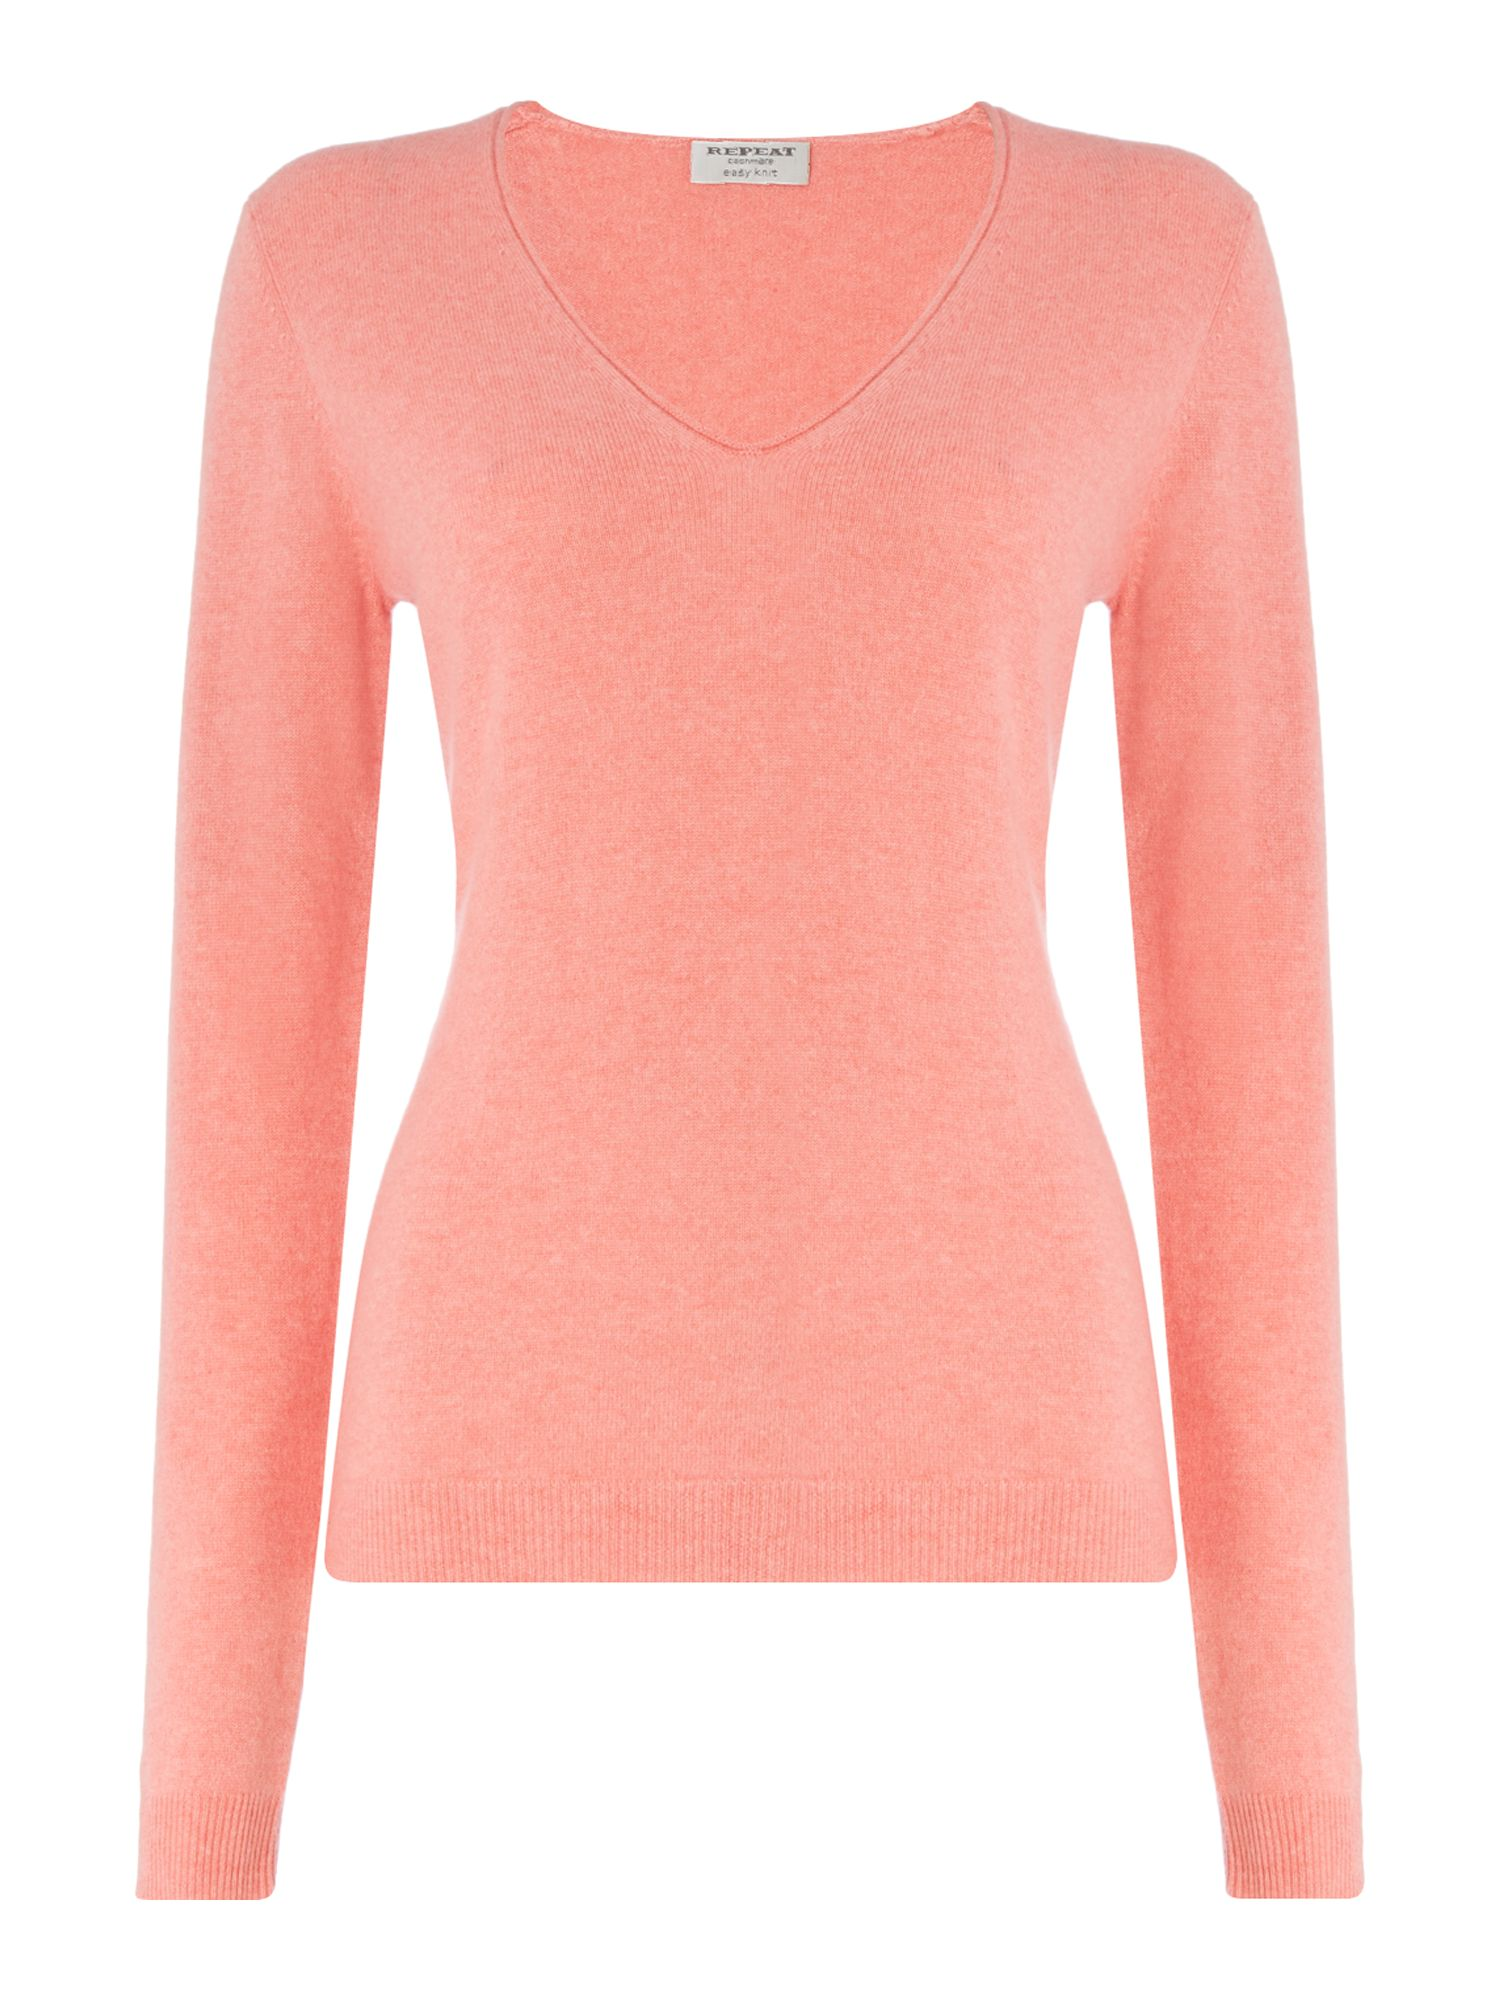 Repeat Cashmere Repeat Cashmere V-neck roll edged jumper, Coral